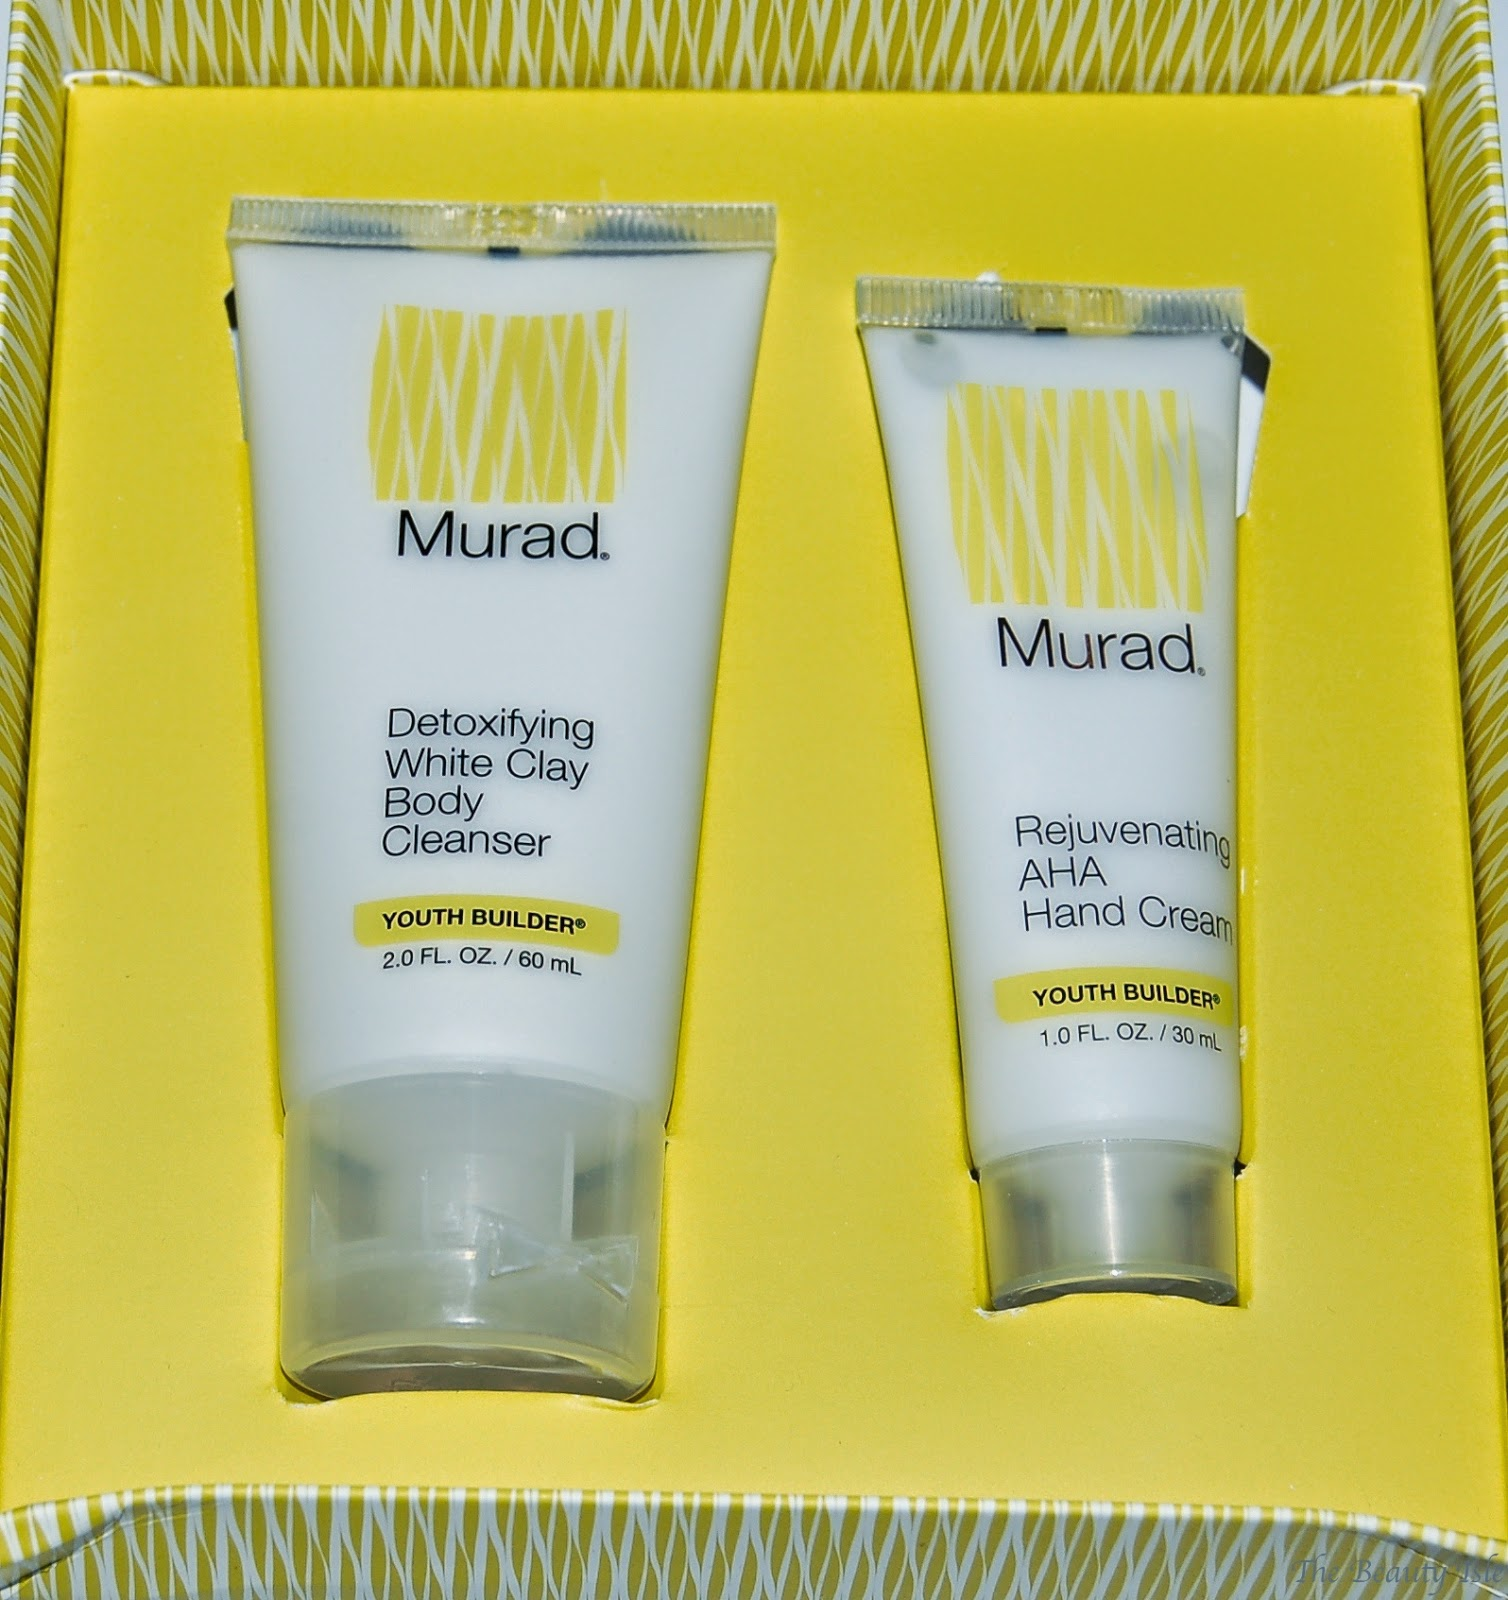 Murad High Performance Youth Builder Bodycare Preview Kit